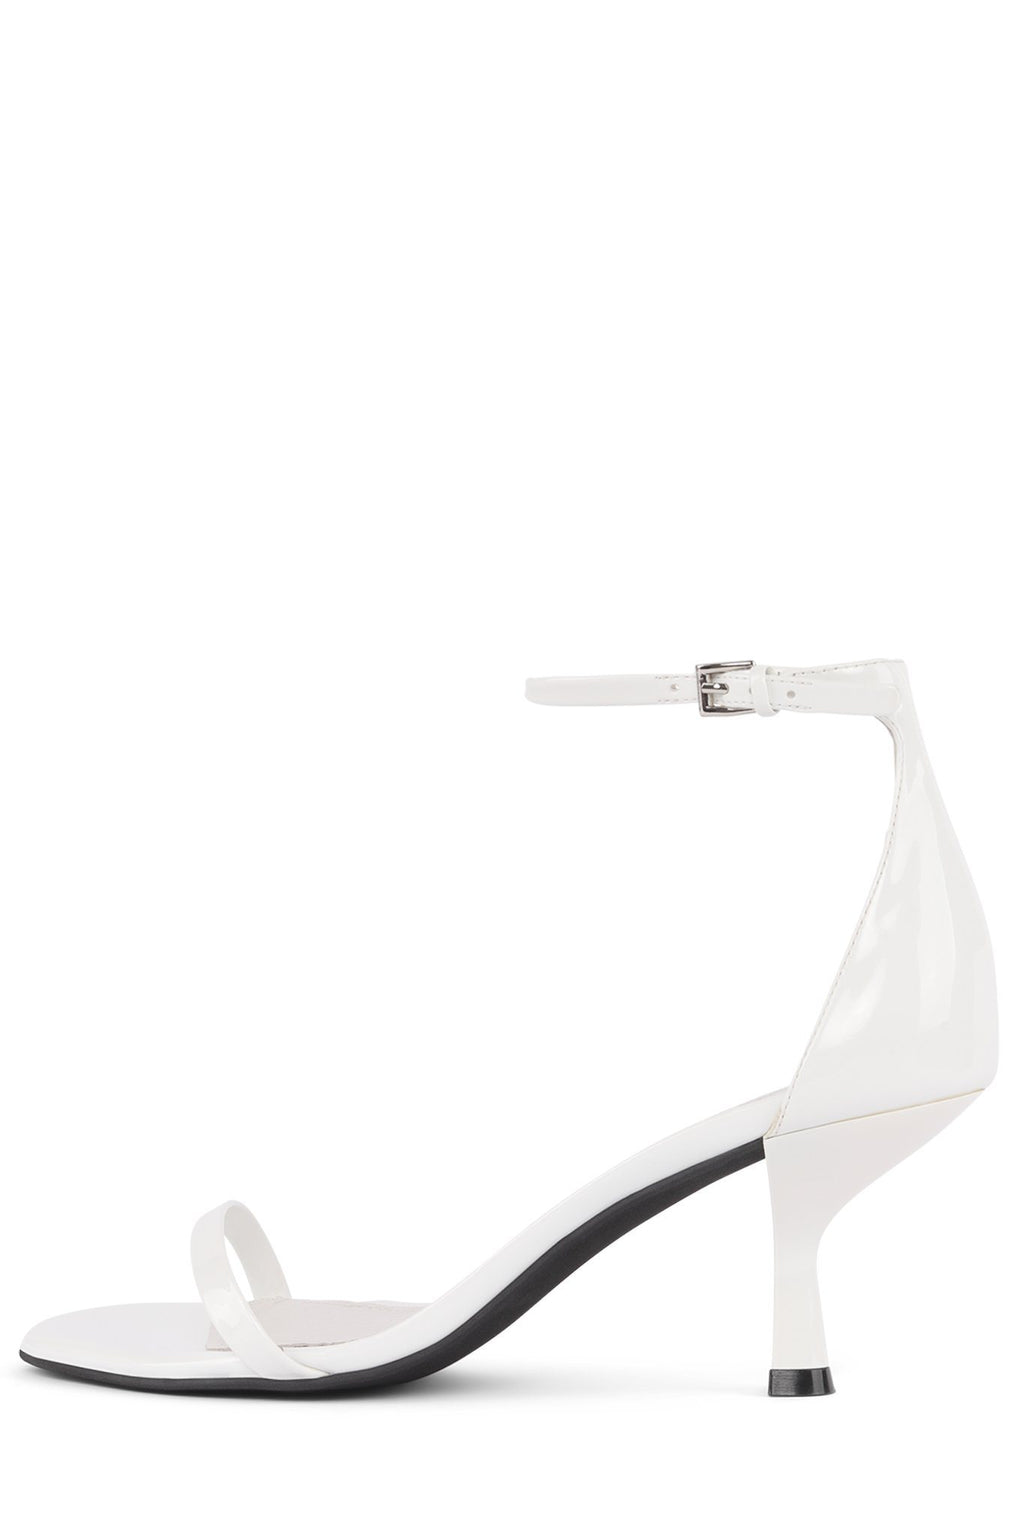 ENTICE Heeled Sandal Jeffrey Campbell White Patent 9